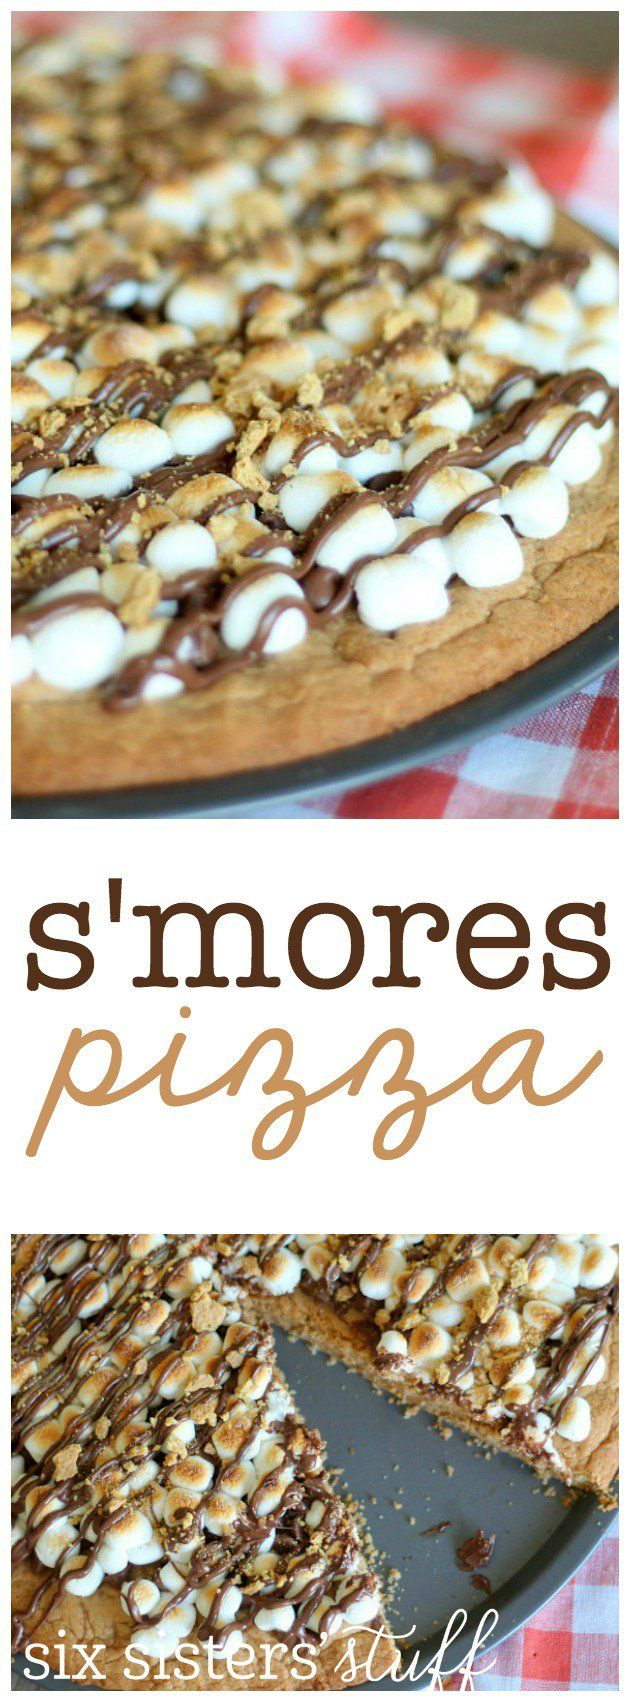 S'mores Pizza from SixSistersStuff.com. Delicious graham cracker cookie crust covered in toasted marshmallows and chocolate. (Melted Chocolate Brownies)